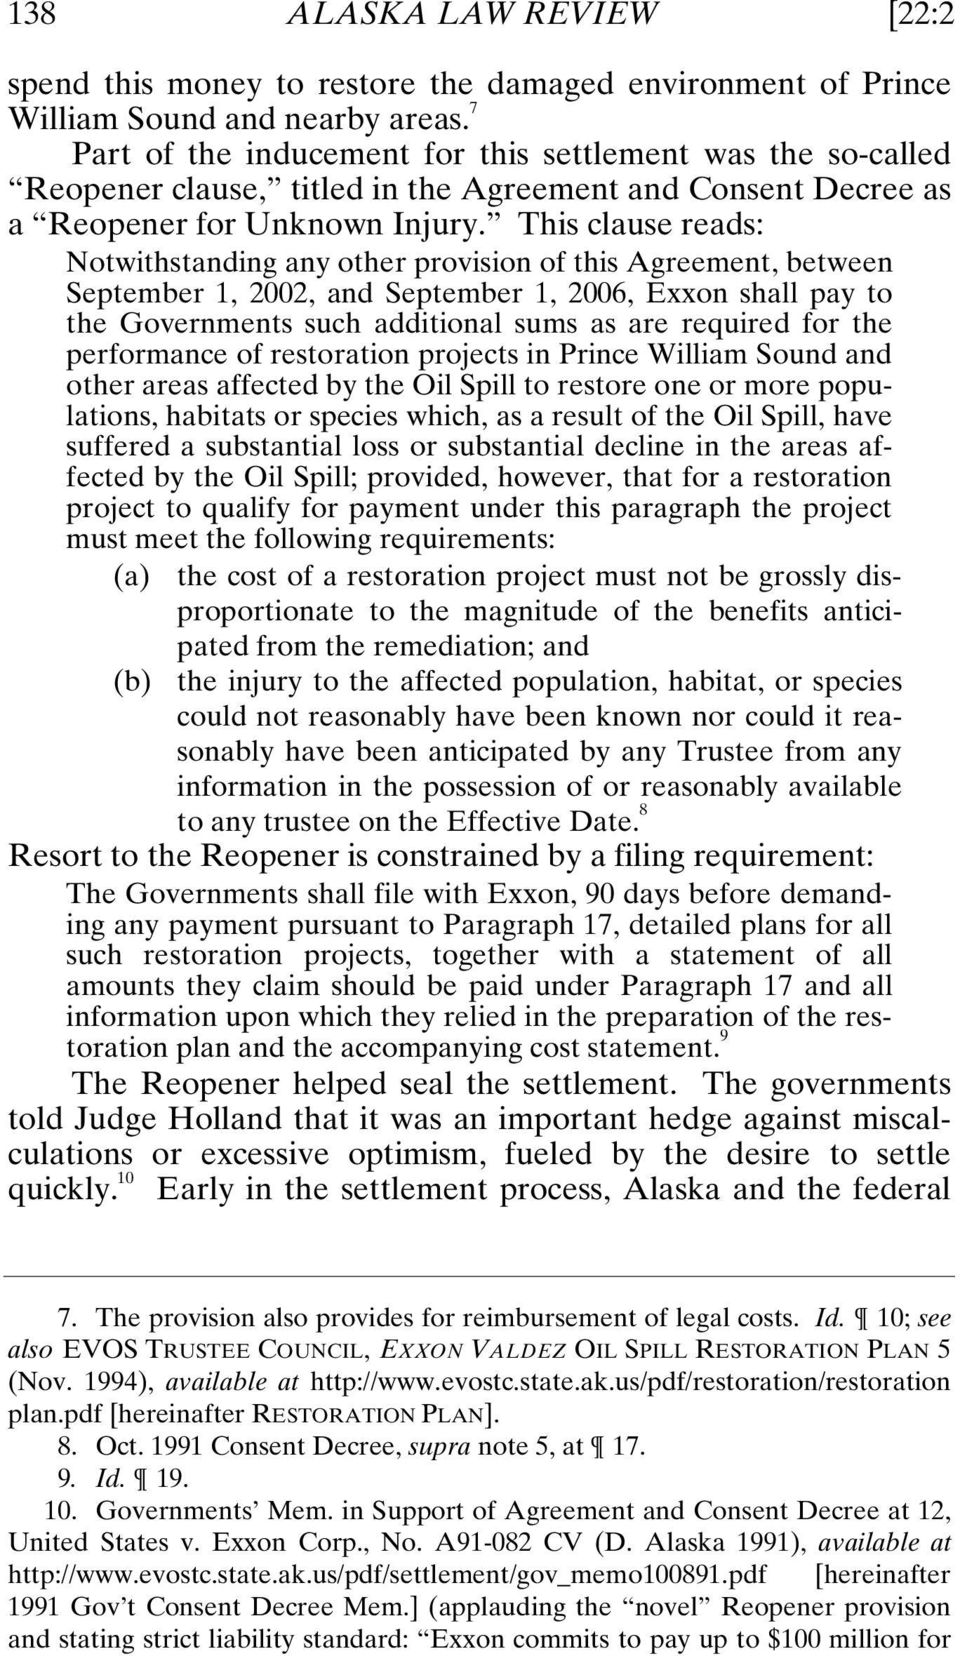 This clause reads: Notwithstanding any other provision of this Agreement, between September 1, 2002, and September 1, 2006, Exxon shall pay to the Governments such additional sums as are required for